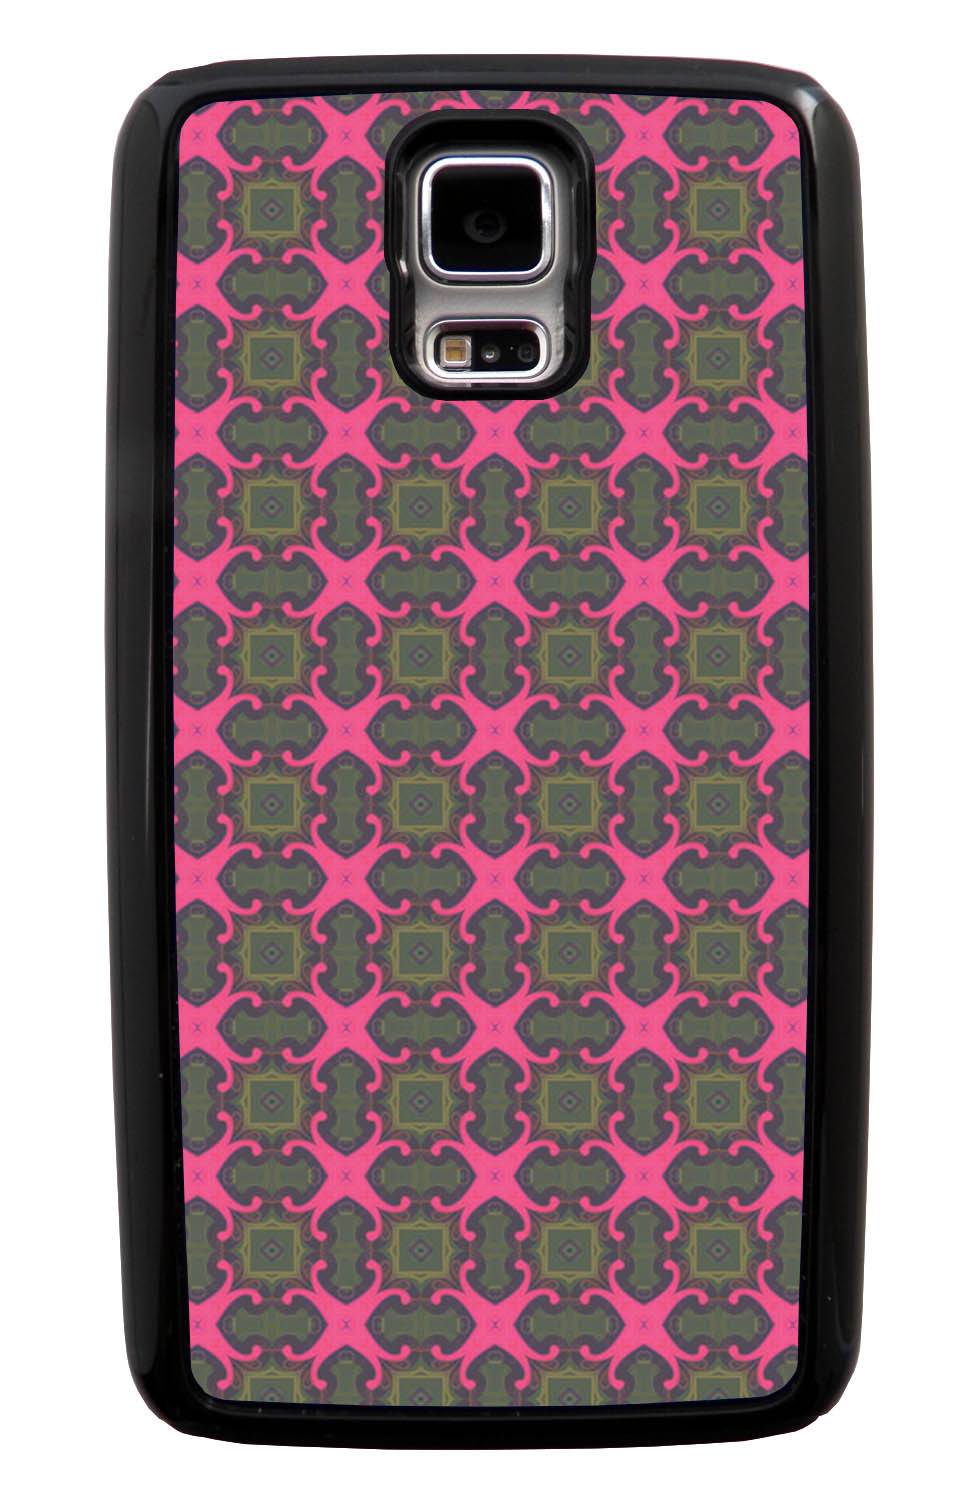 Samsung Galaxy S5 / SV Abstract Case - Olive Green and Pink - Flower Petal Like - Black Tough Hybrid Case